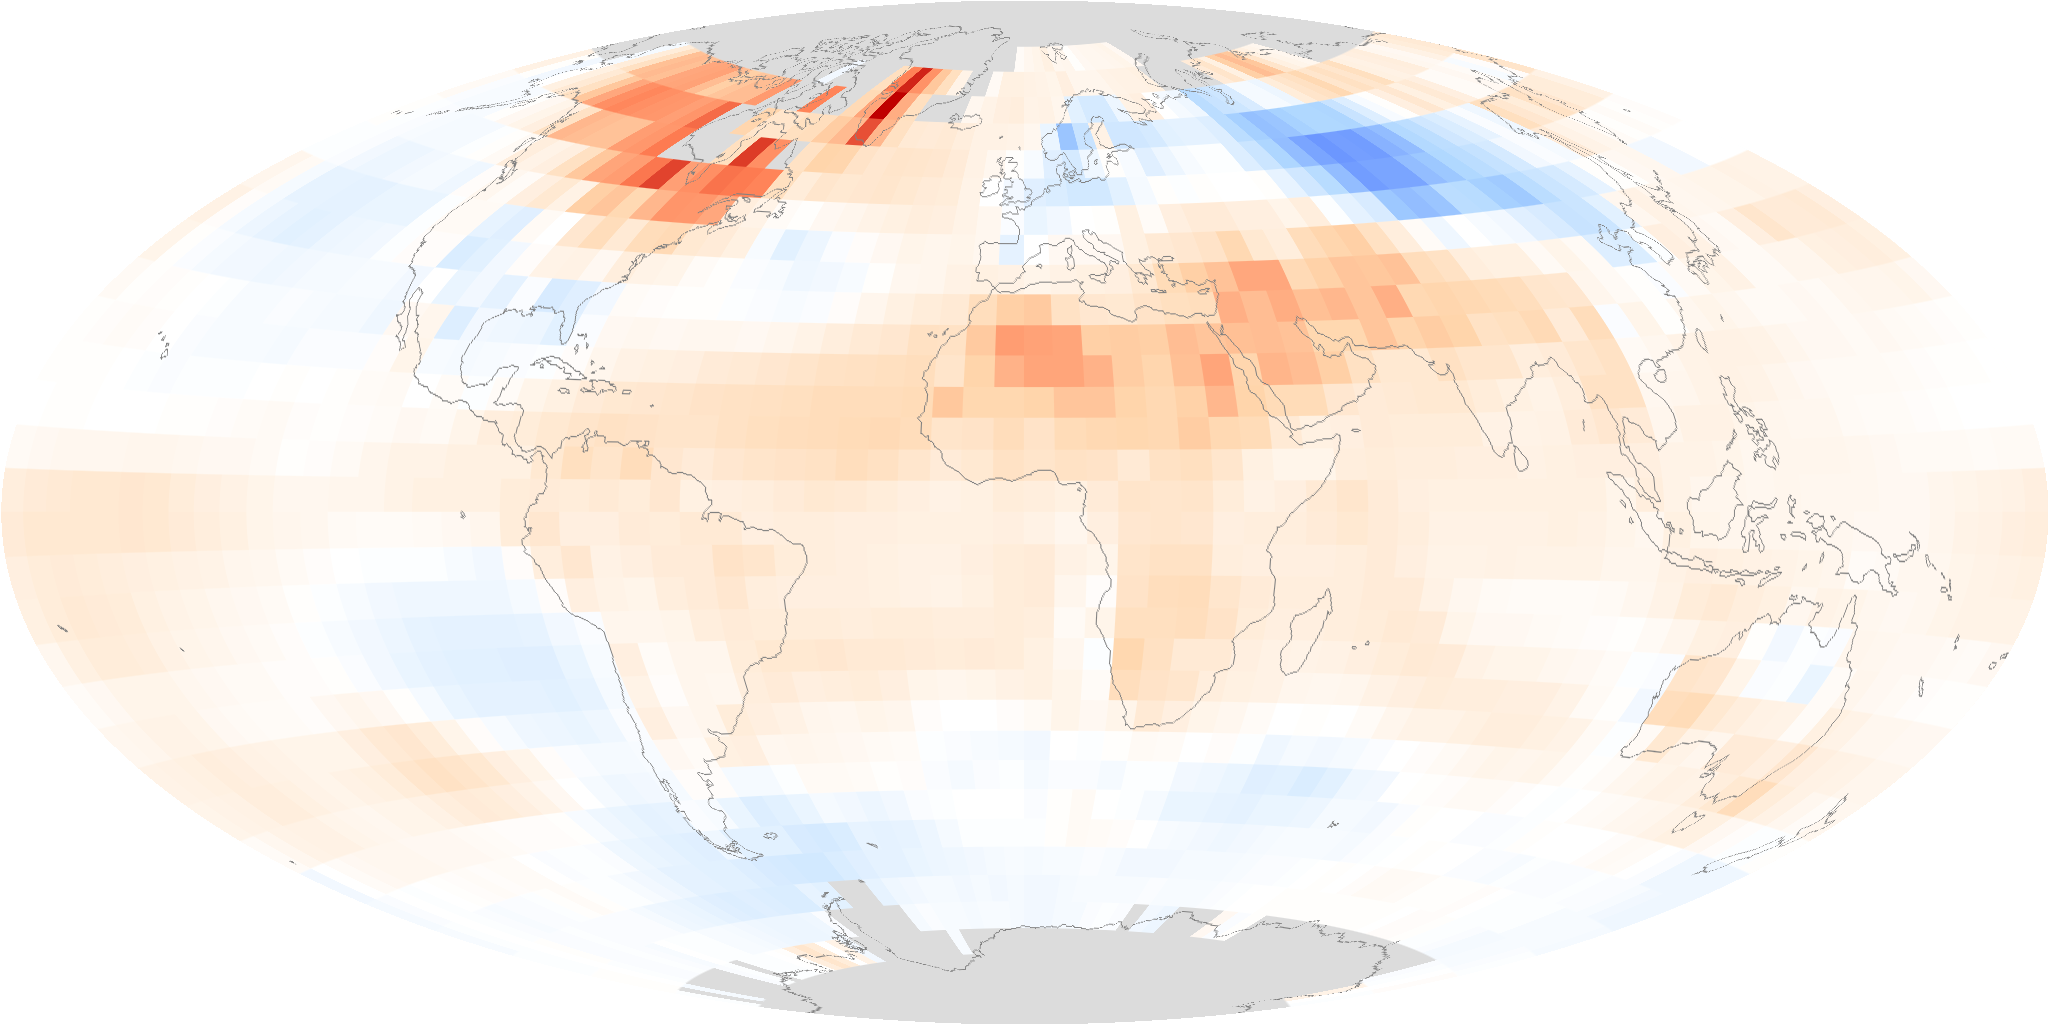 January-June 2010 Temperatures